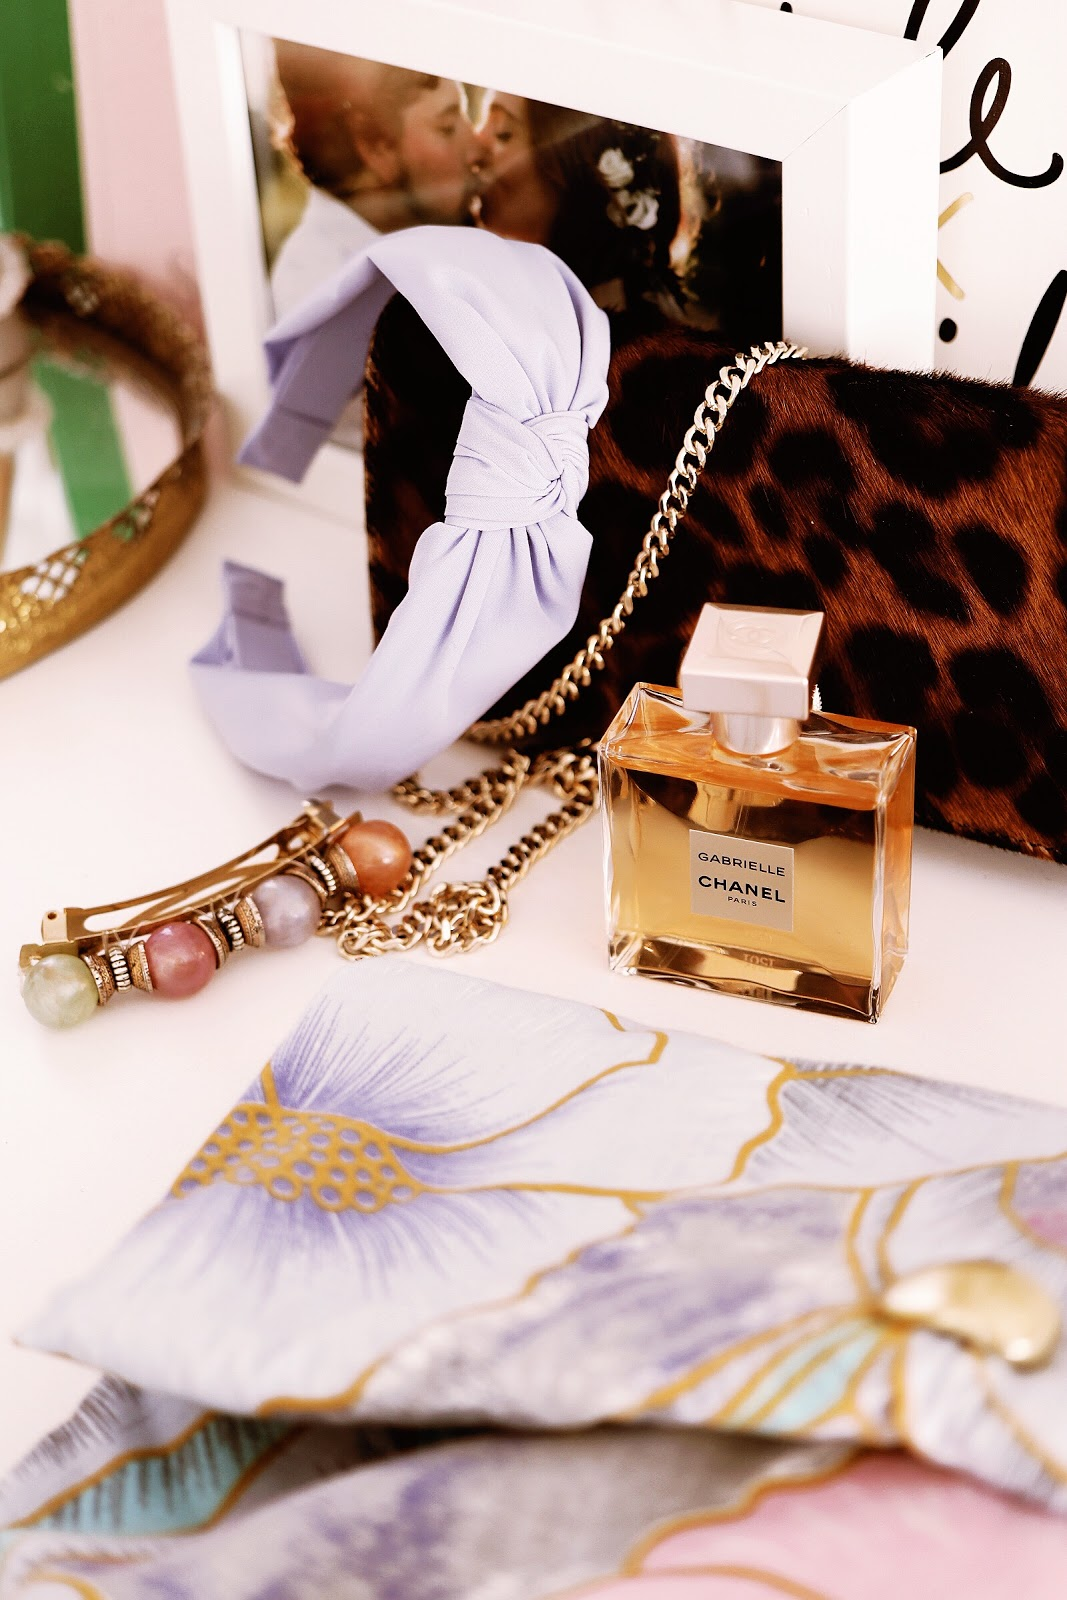 blogger hair accessories, Gabrielle Chanel perfume